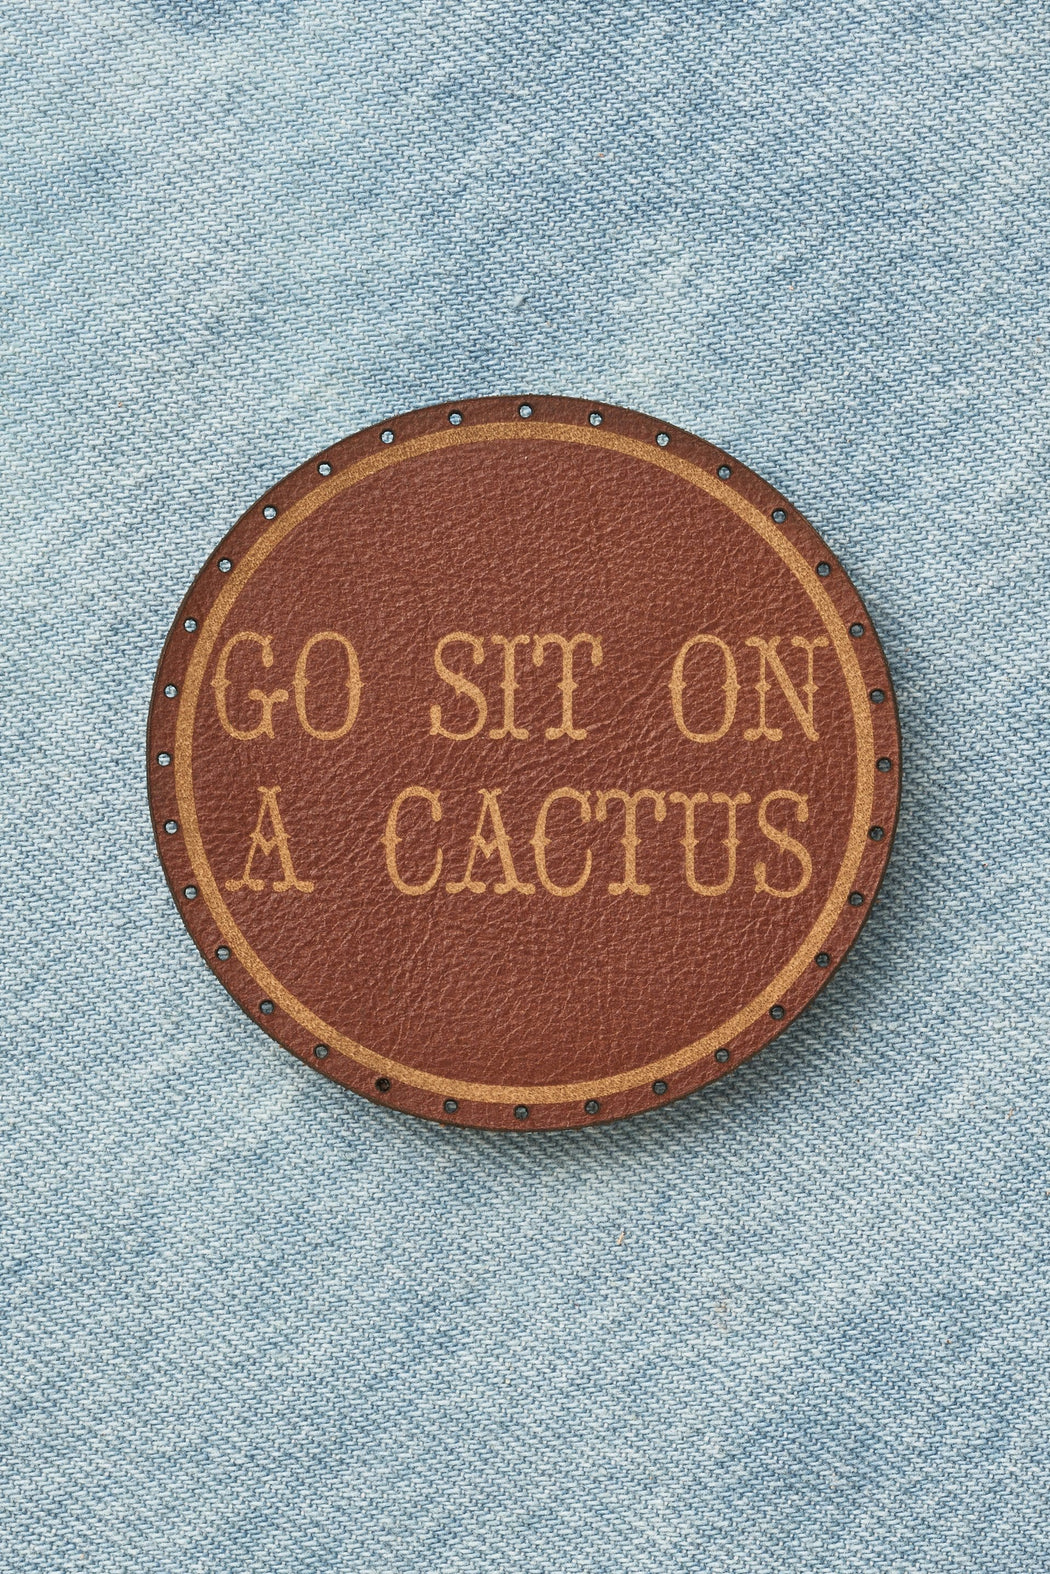 GO SIT ON A CACTUS PATCH - Whiskey